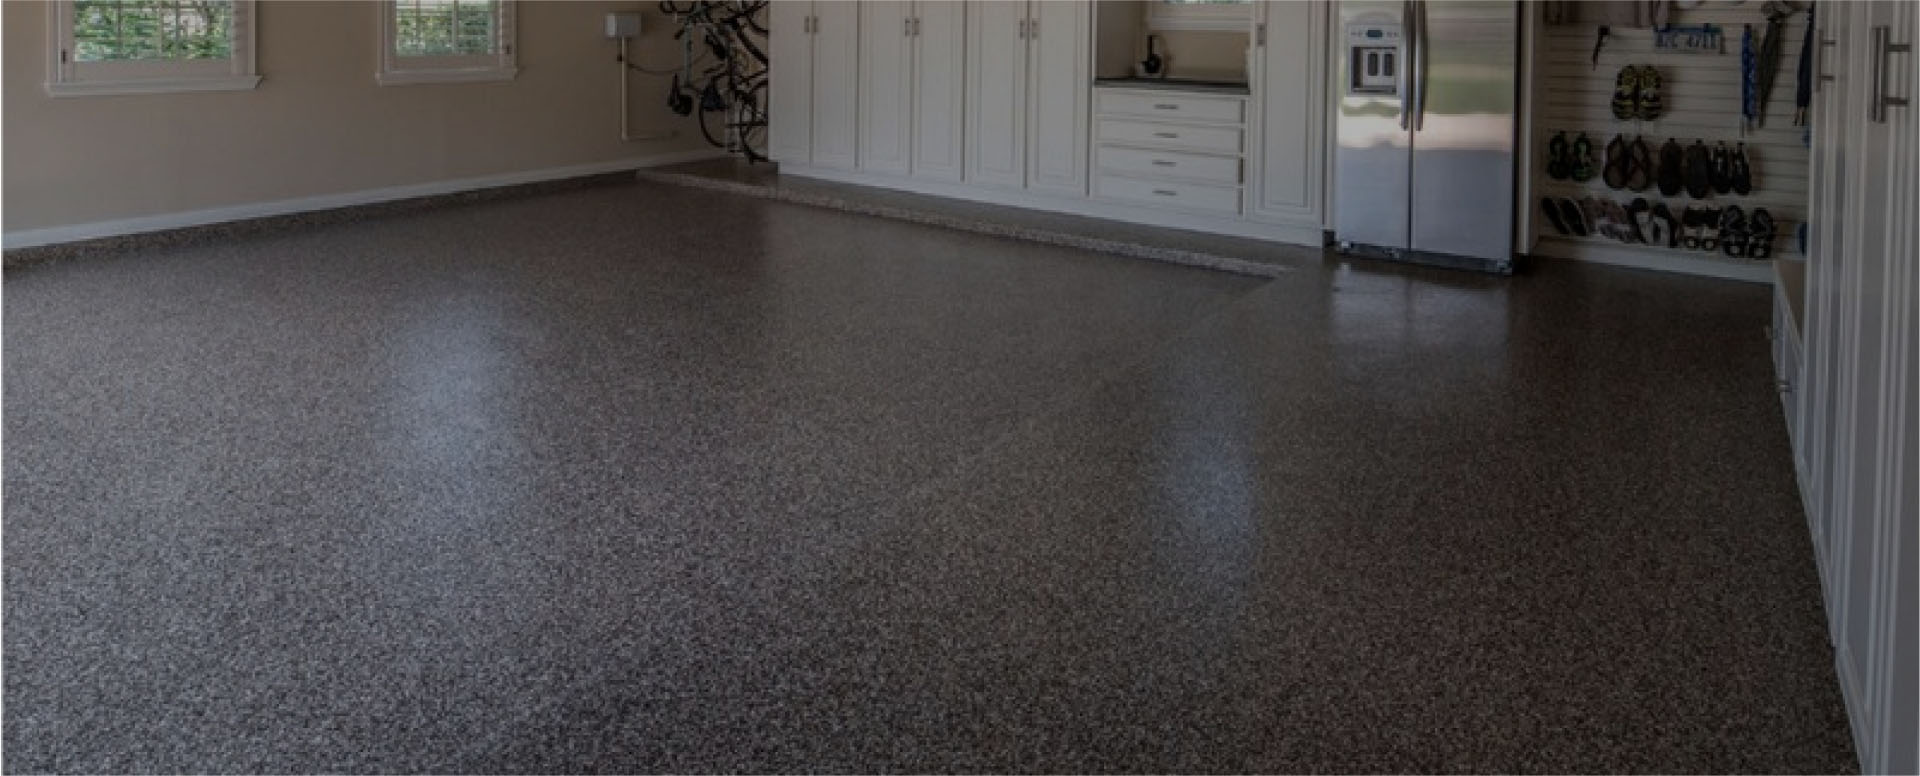 Garage Experts Epoxy Floor Floorguard Epoxy Floor Coating Products Floorguard